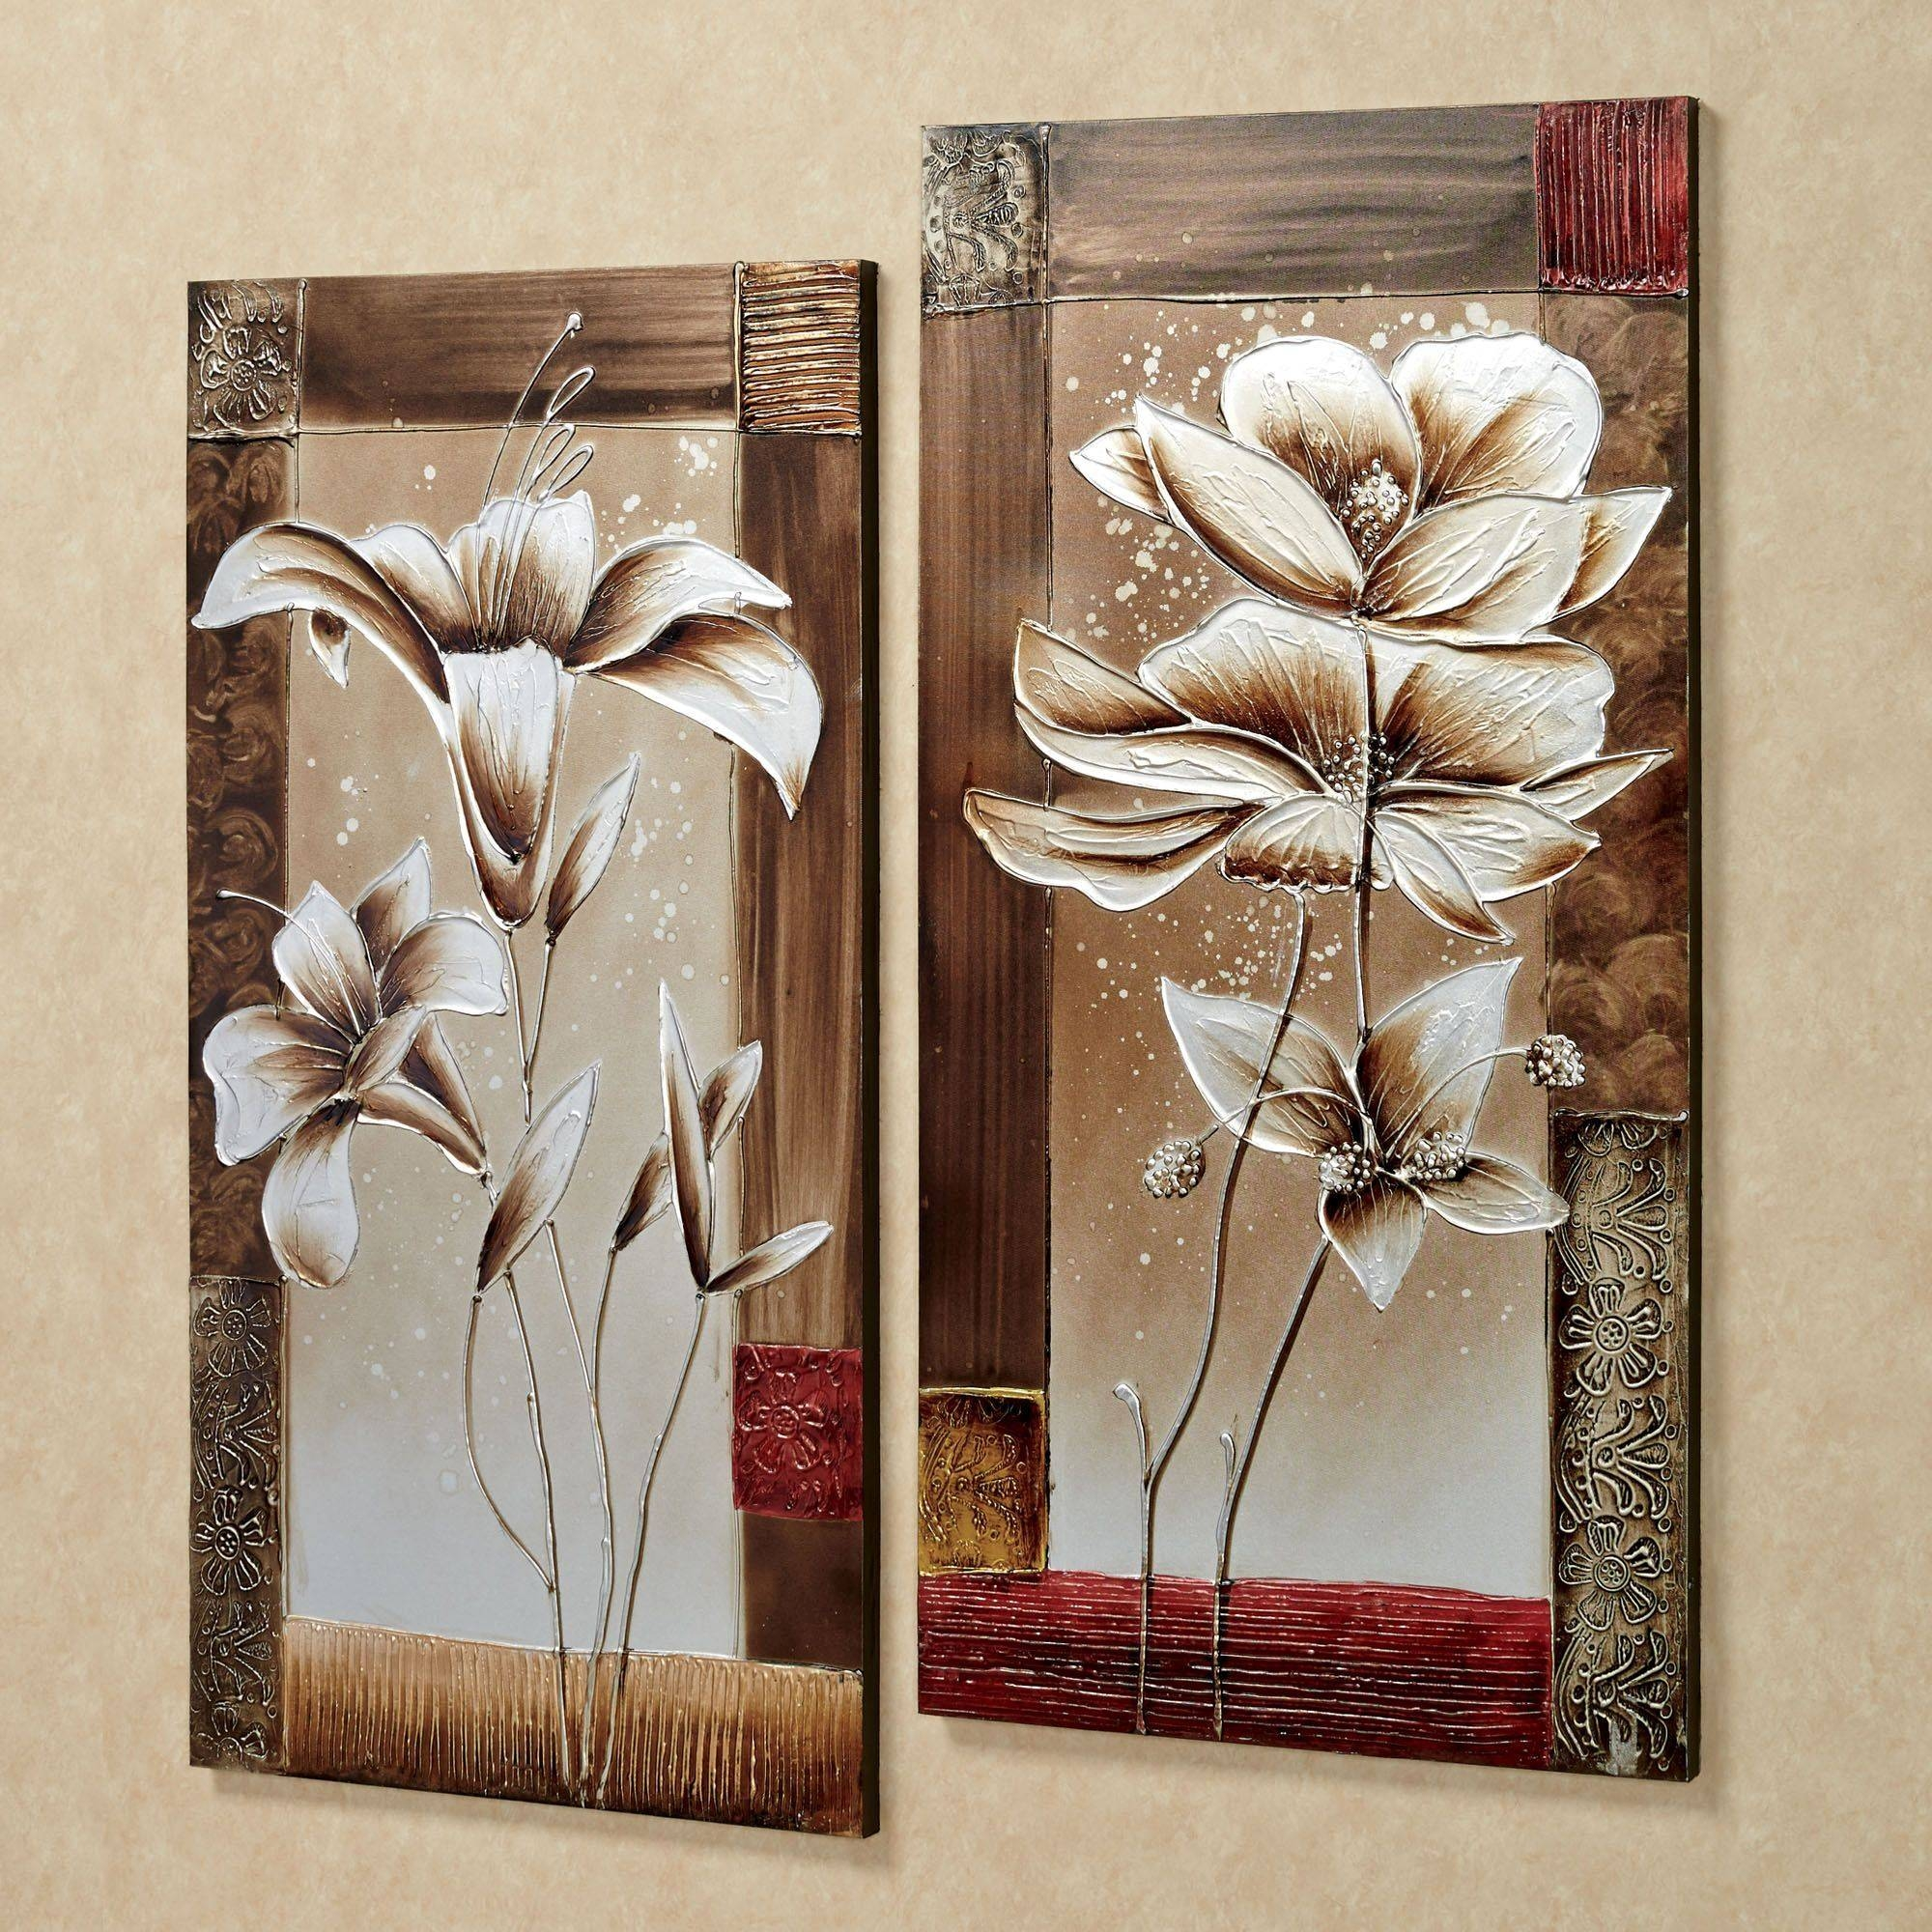 Decor: Petals Of Spring Floral Canvas Wall Art Set Pertaining To Latest 3 Pc Canvas Wall Art Sets (View 8 of 20)